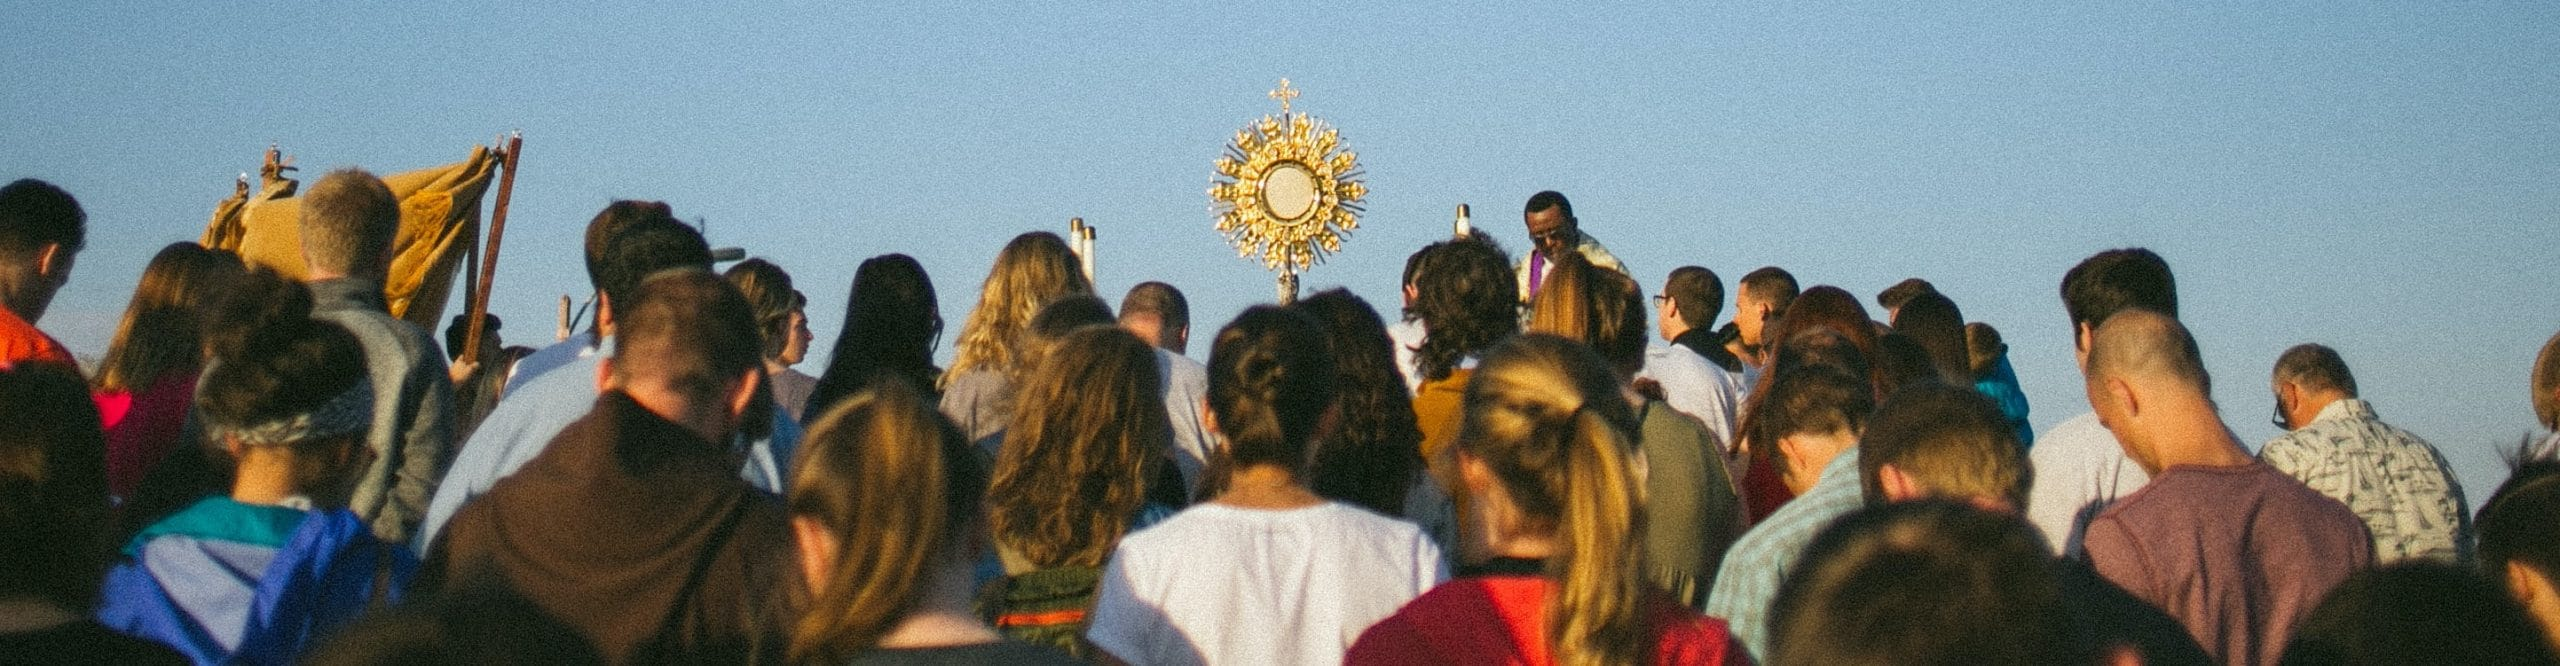 A group of Catholic pilgrims gather for the Eucharist with monstrance held high.